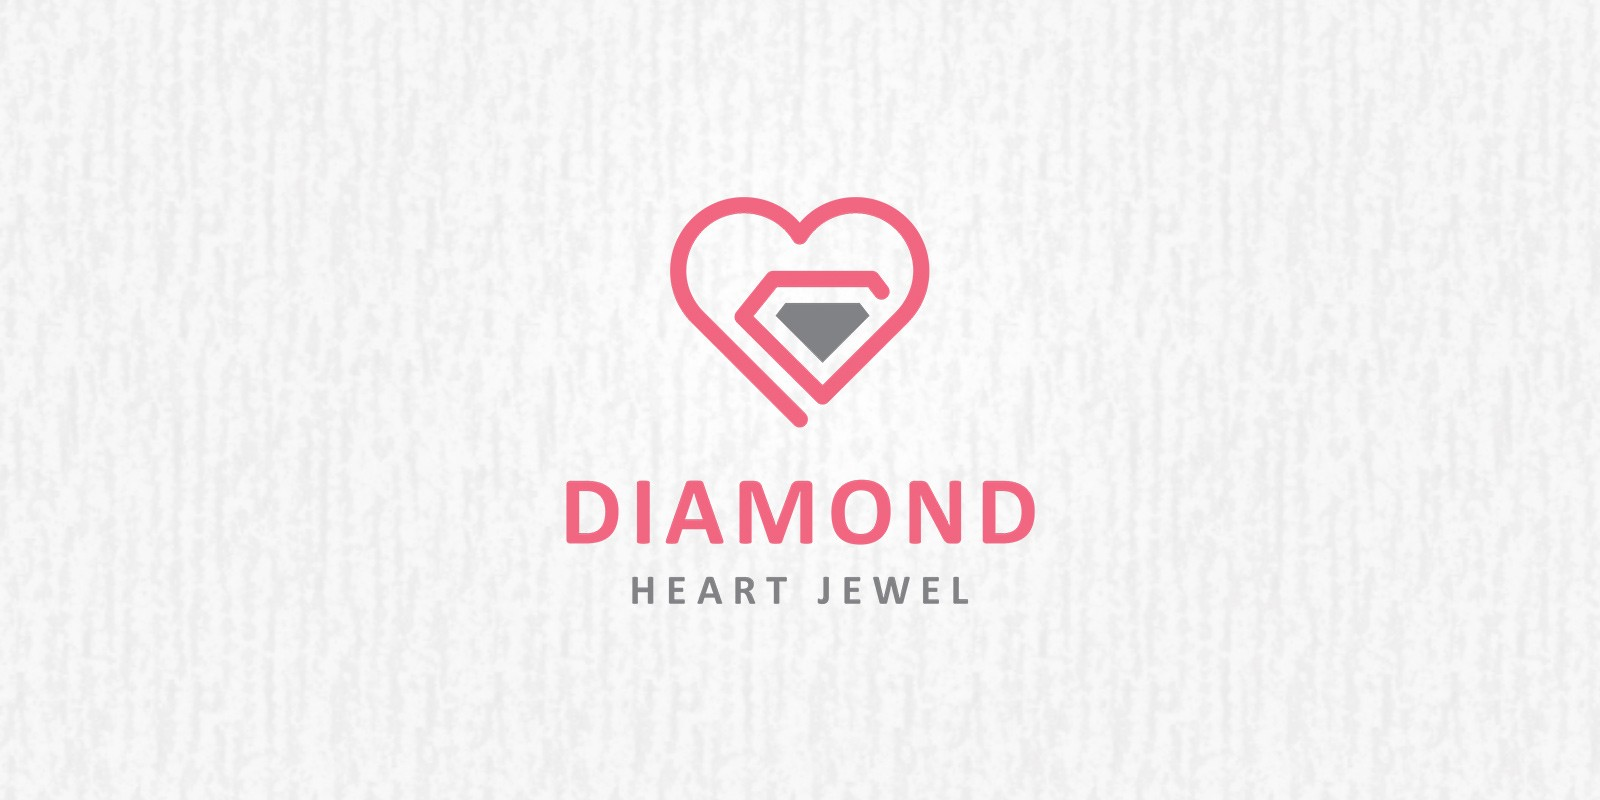 equipment jewel store kiss diamond carbonado jewelry brand logo black